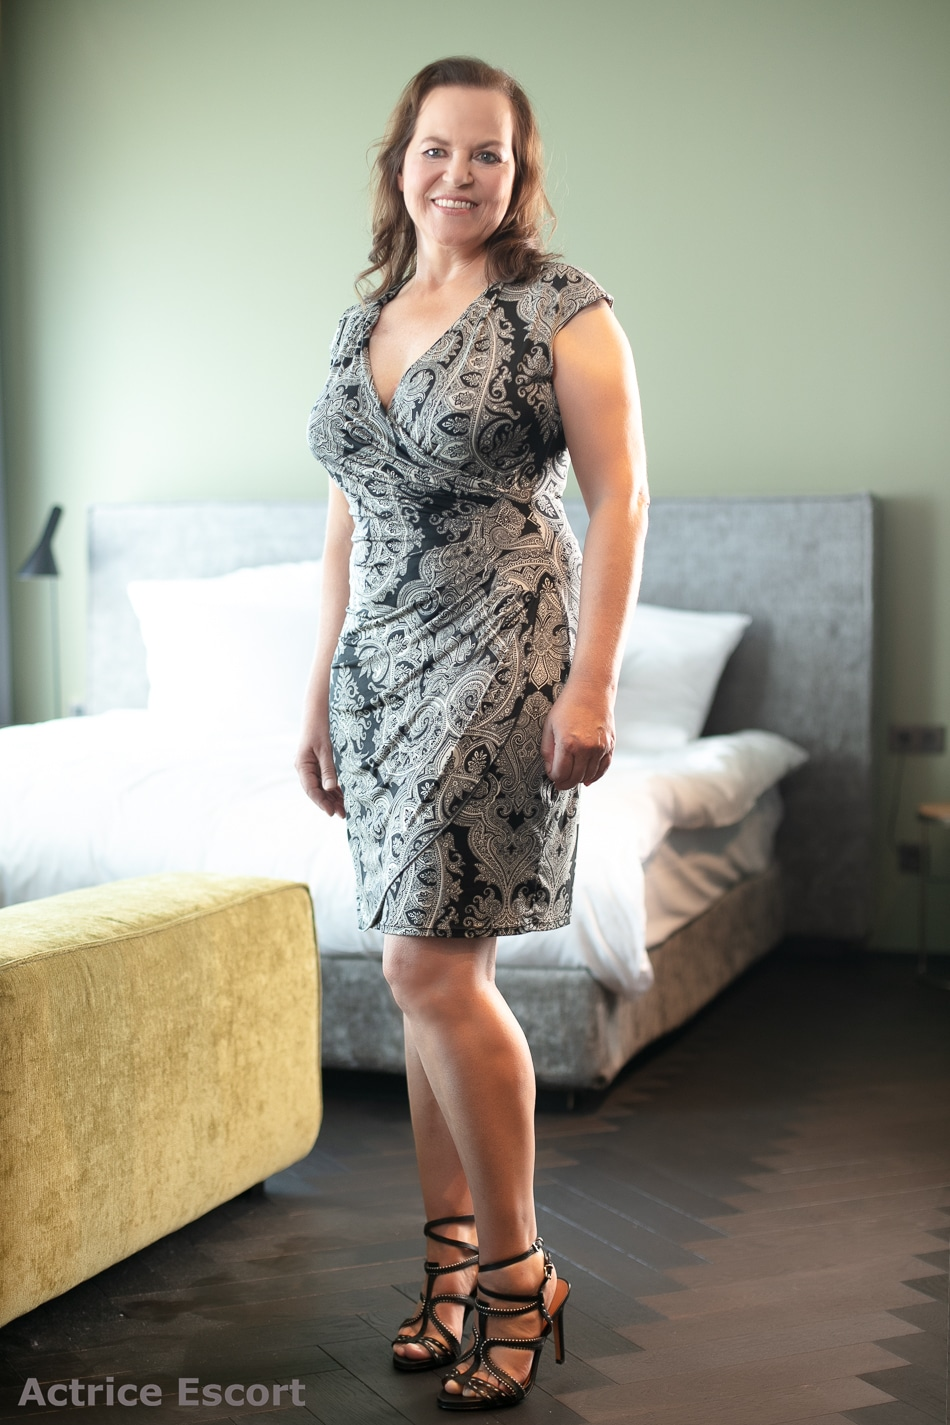 Bettina Escortservice Duesseldorf(12)